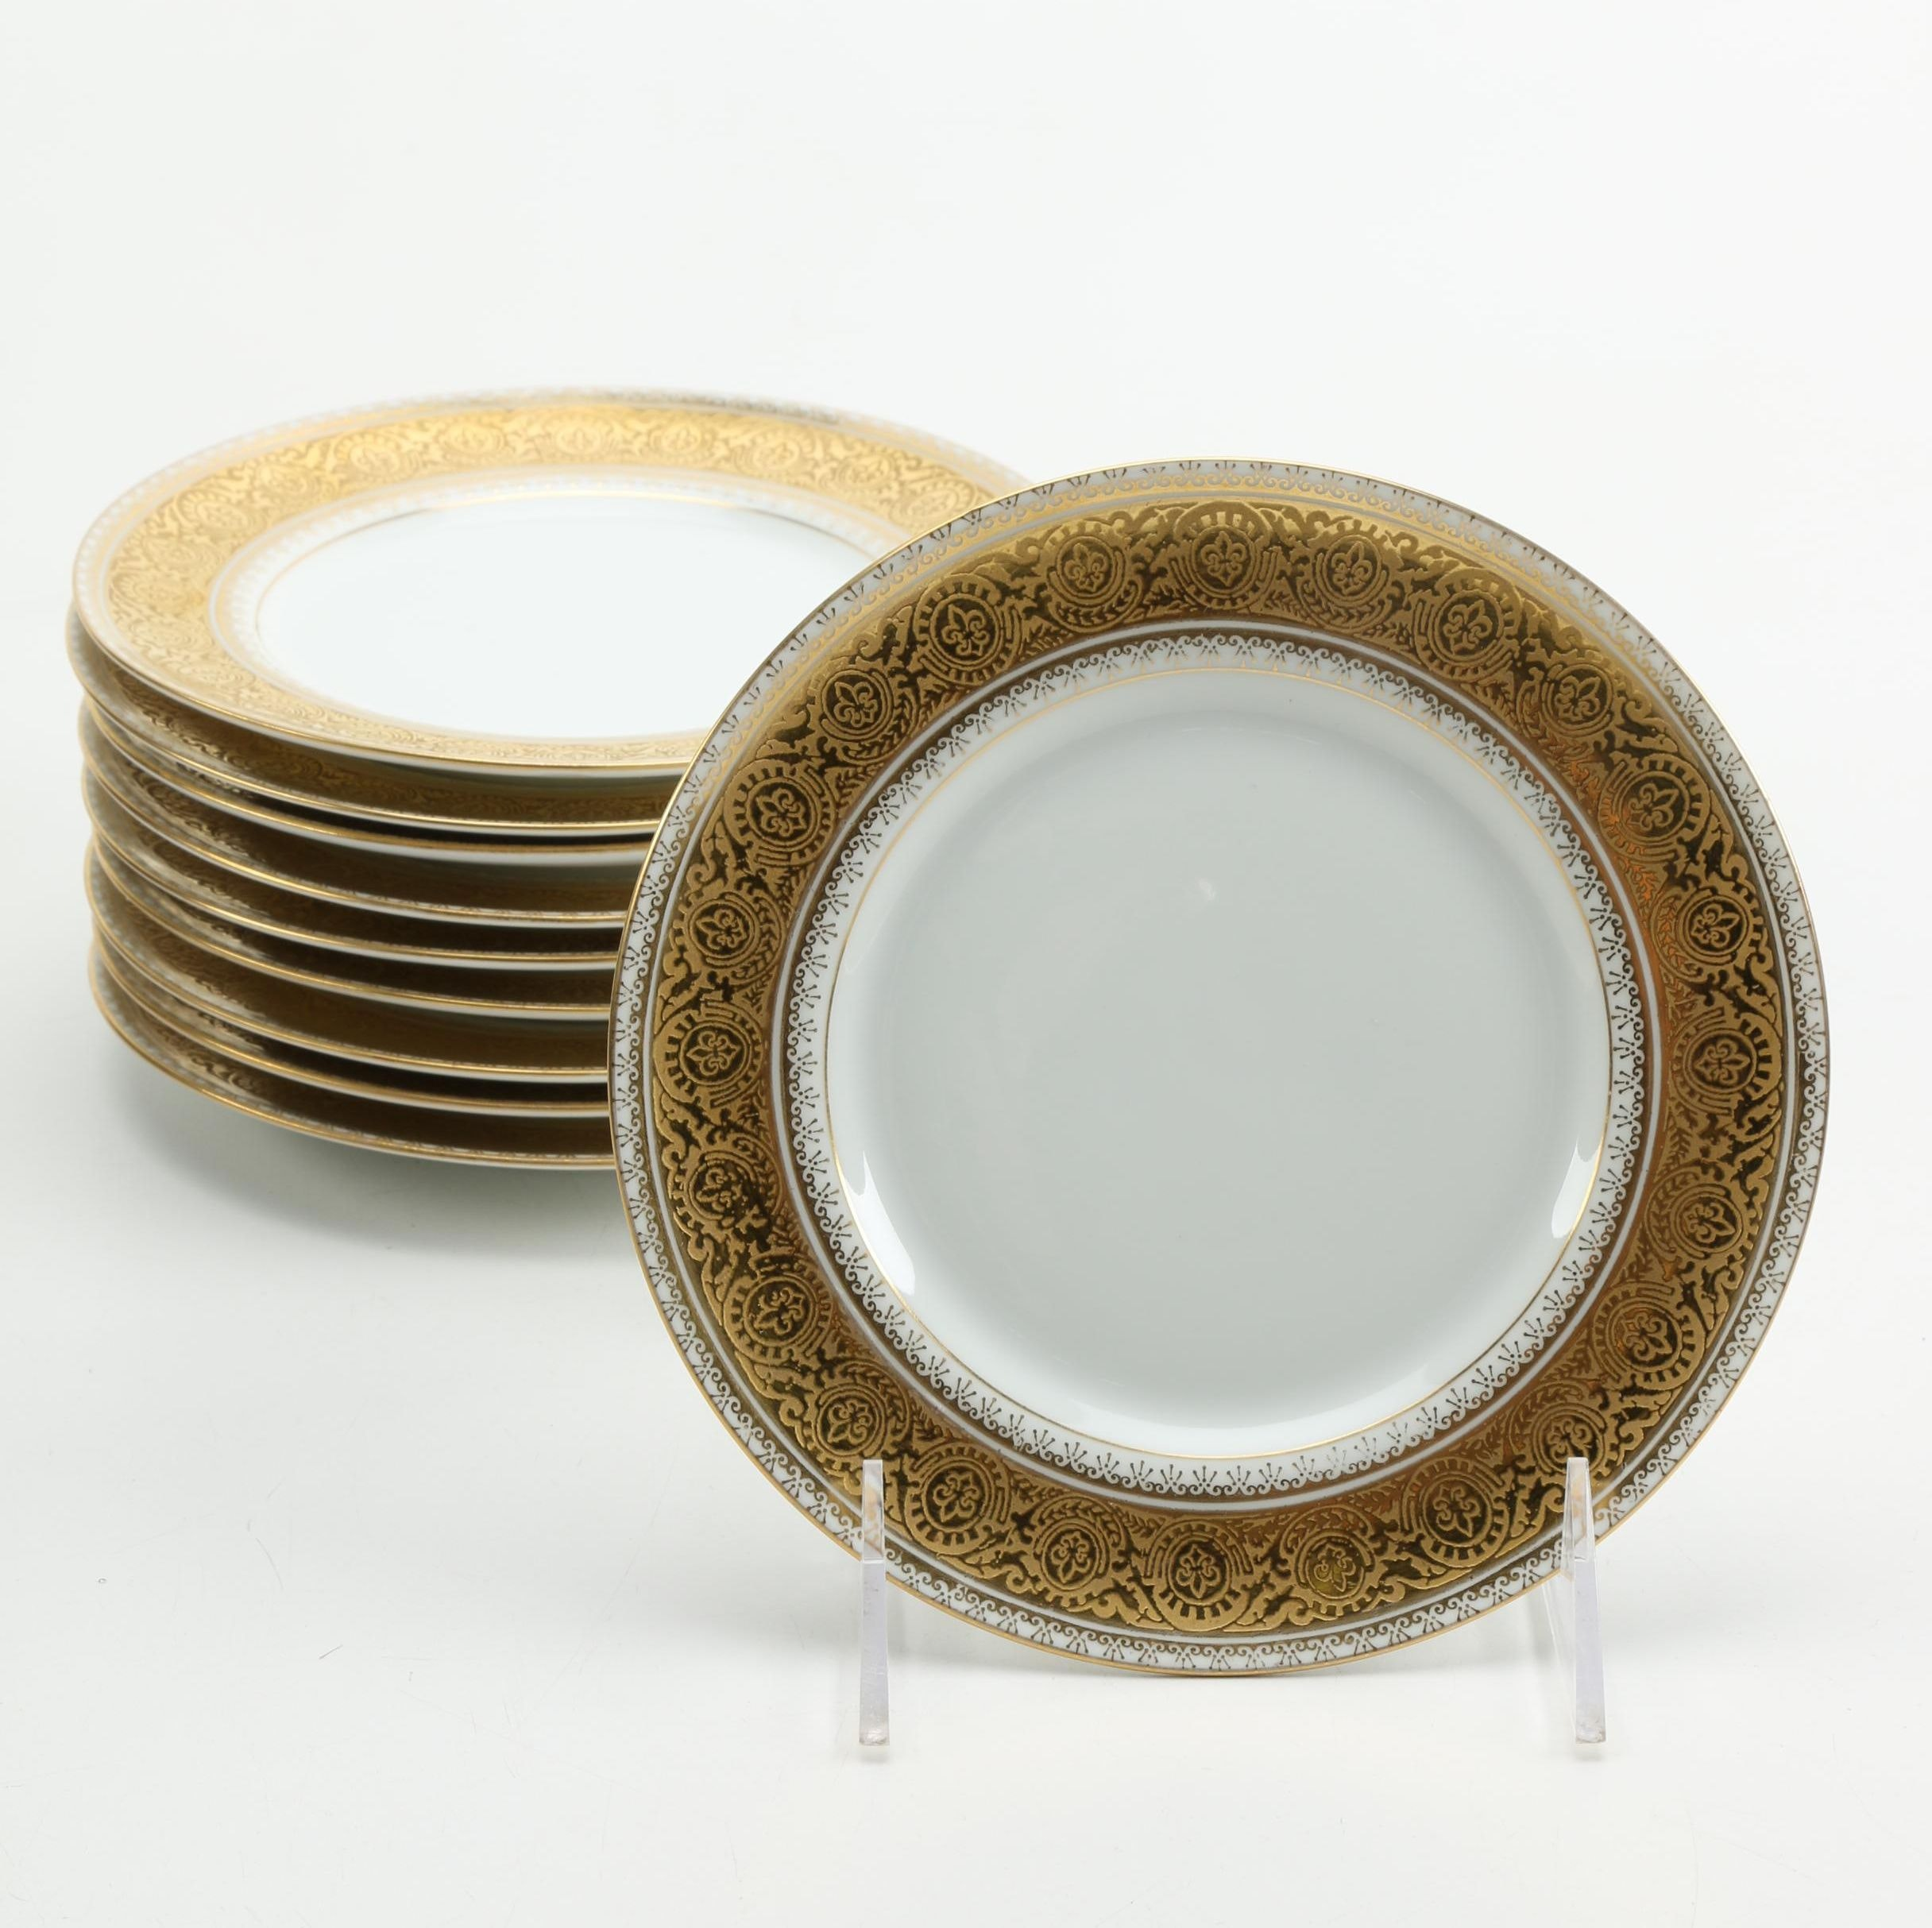 Limoges M. Redon China Plates ... : limoges dinnerware - pezcame.com